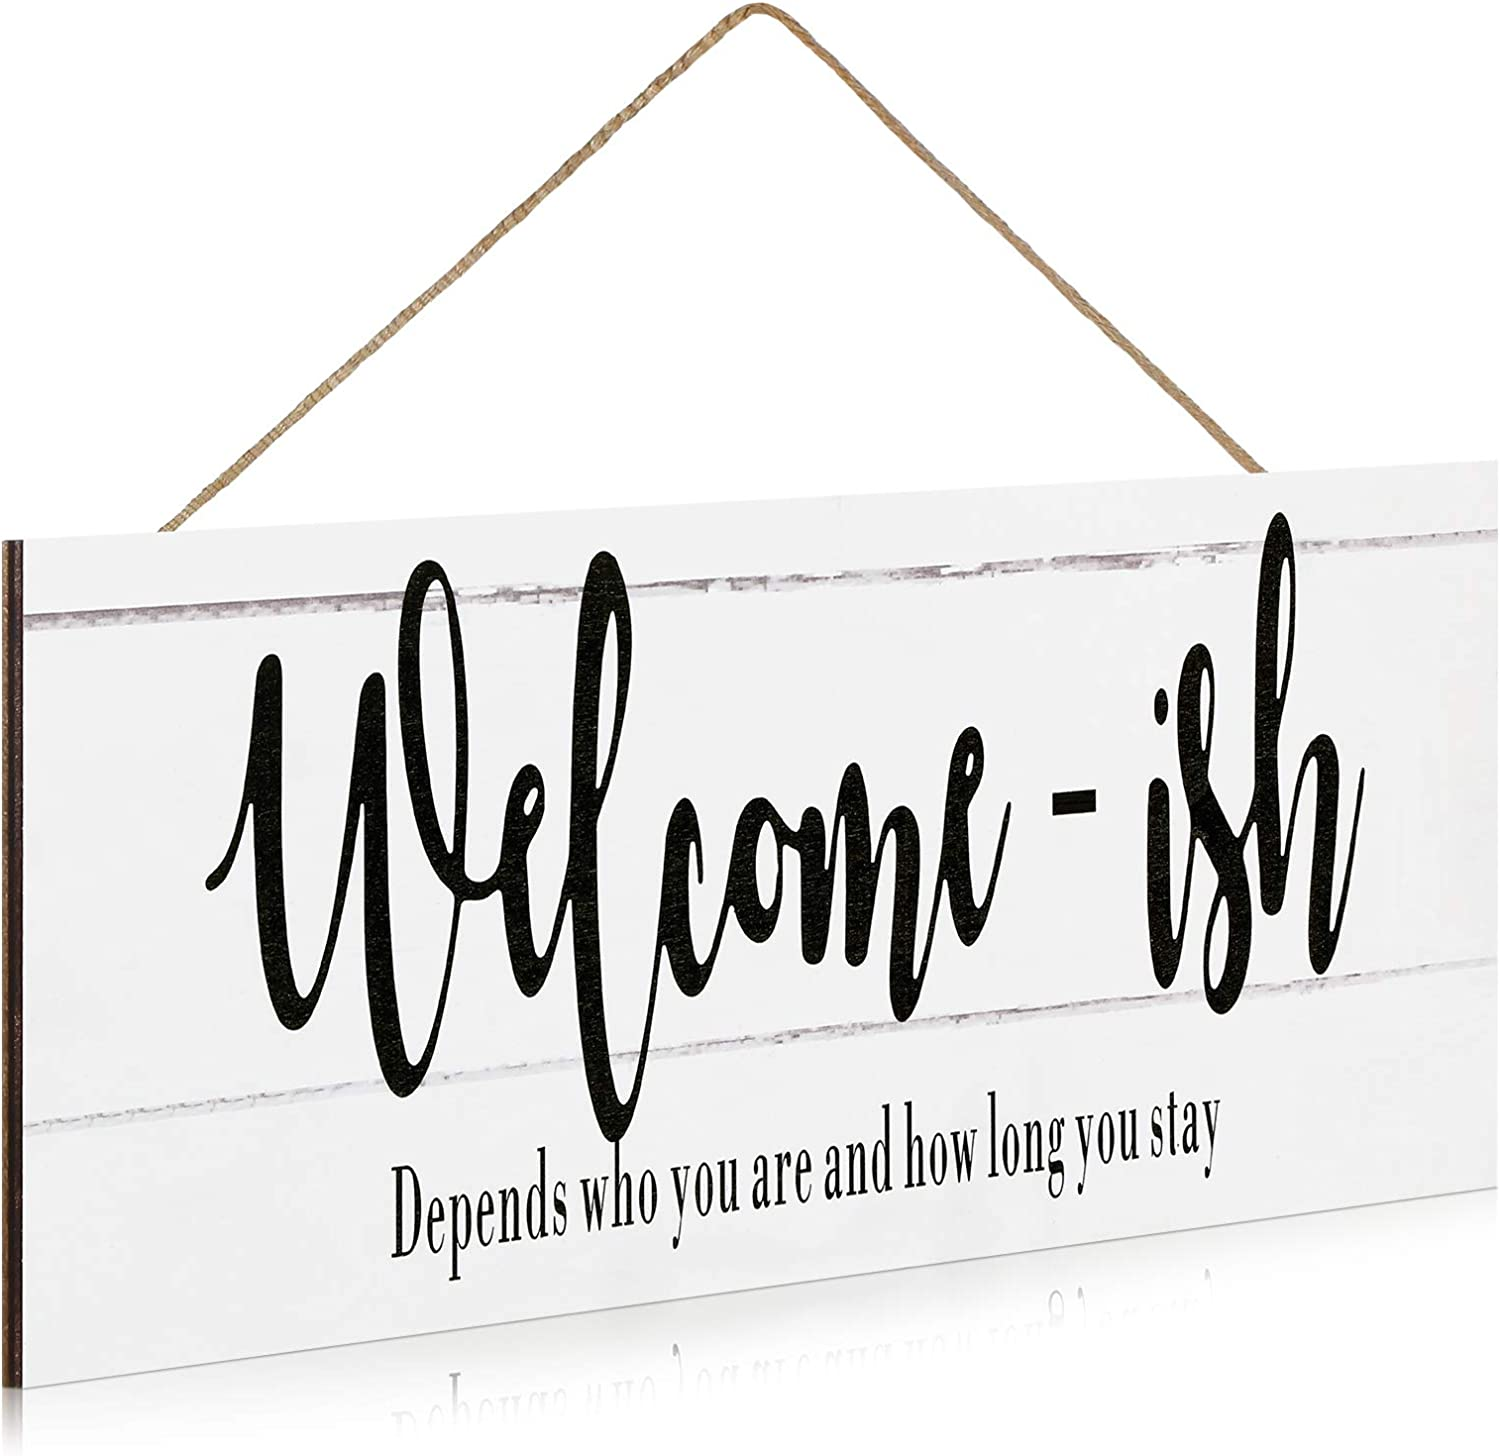 Chunful Elegant Cute Signs Welcome Sign for Front Door Funny Welcome-ish Hanging Wooden Plaque Decoration Rustic Wood Farmhouse Home Decor Porch or Entryway Accent, 15.7 x 5.5 Inch